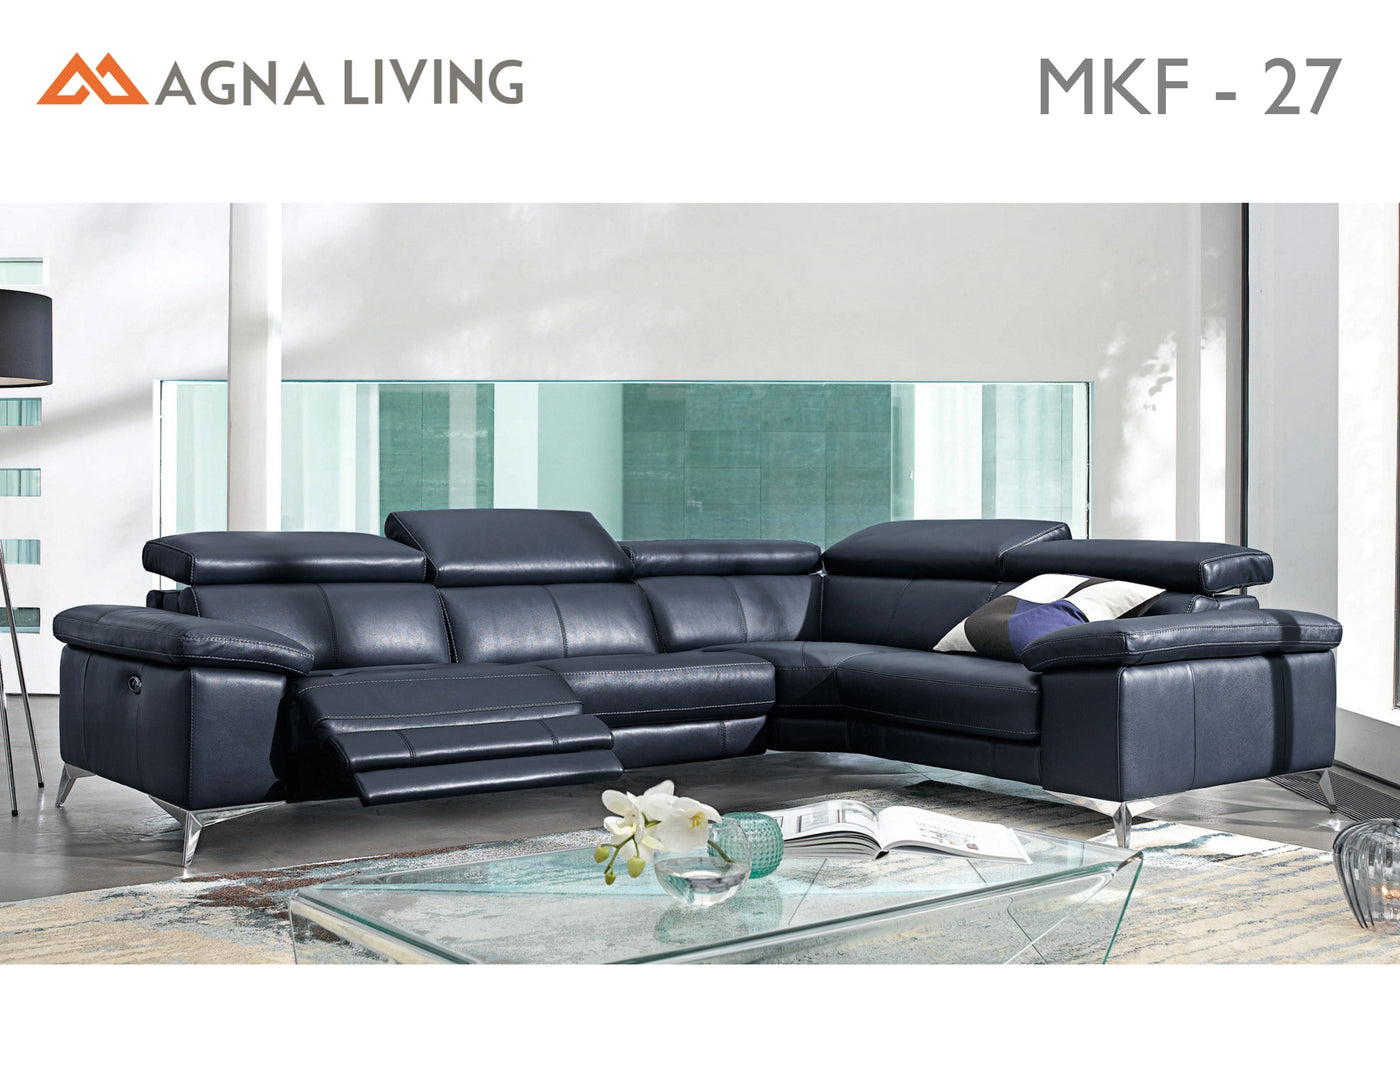 - Avalon Leather Sectional Sofa W/ Power Reclining In Sunnyvale